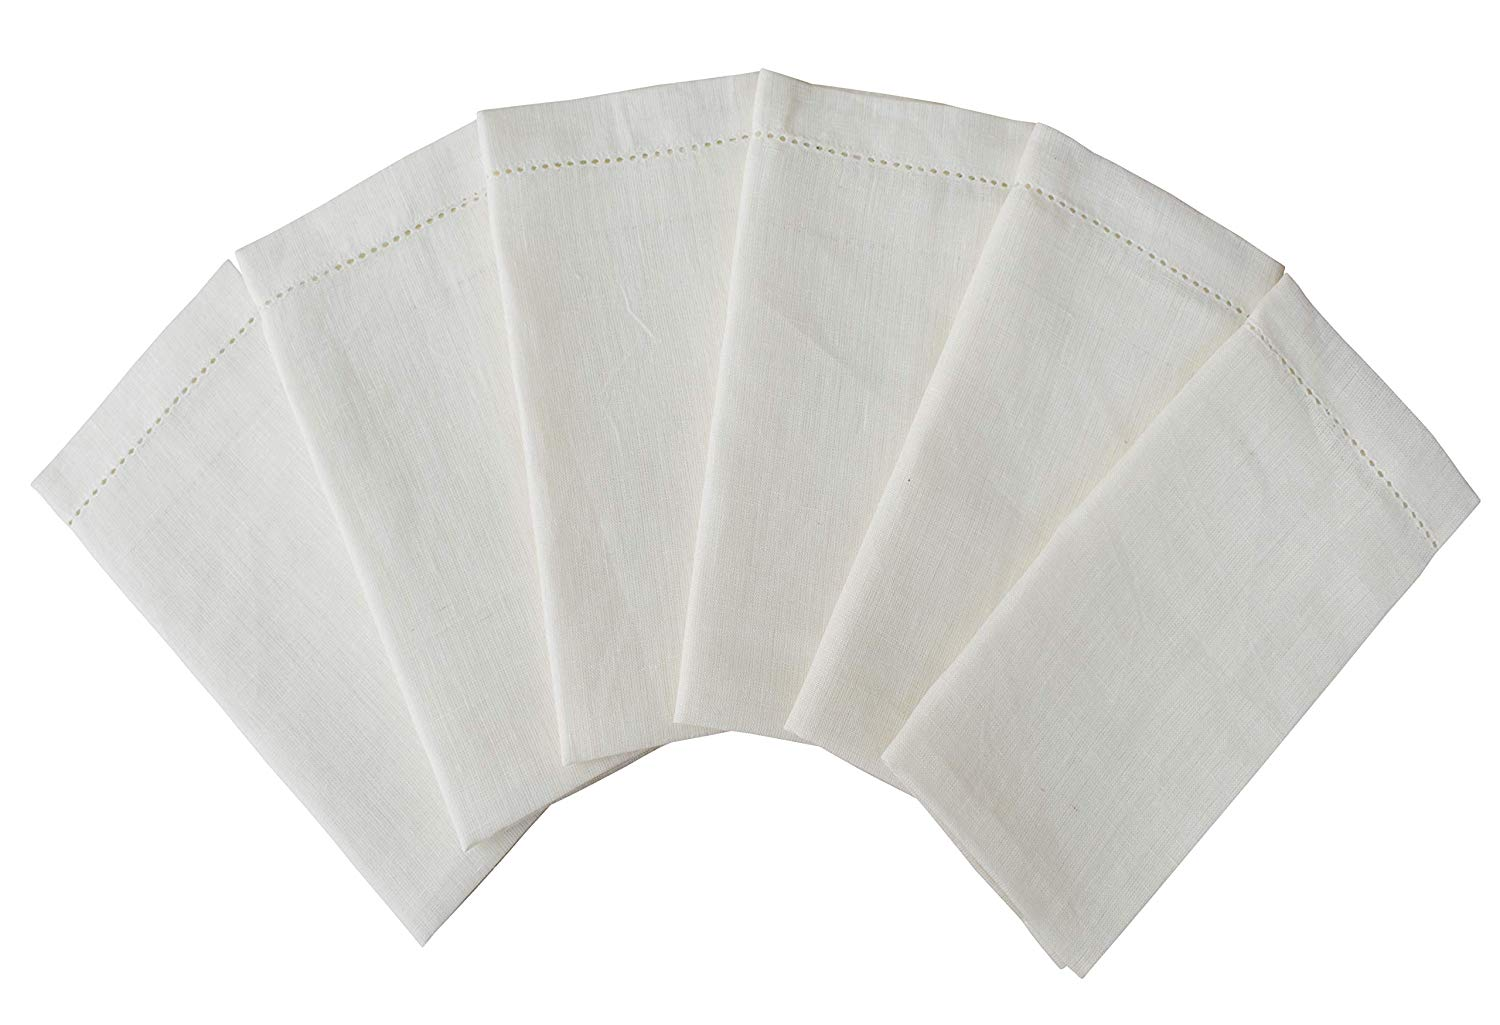 Dinner Napkins in Linen(100% Pure) with Hemstitched-18x18 Ivory,Wedding Napkins,Cocktail Napkins,Cloth Napkins,Fabric Napkins,Linen Napkins,Cloth Napkins Set of 12,Linen Cloth Napkins